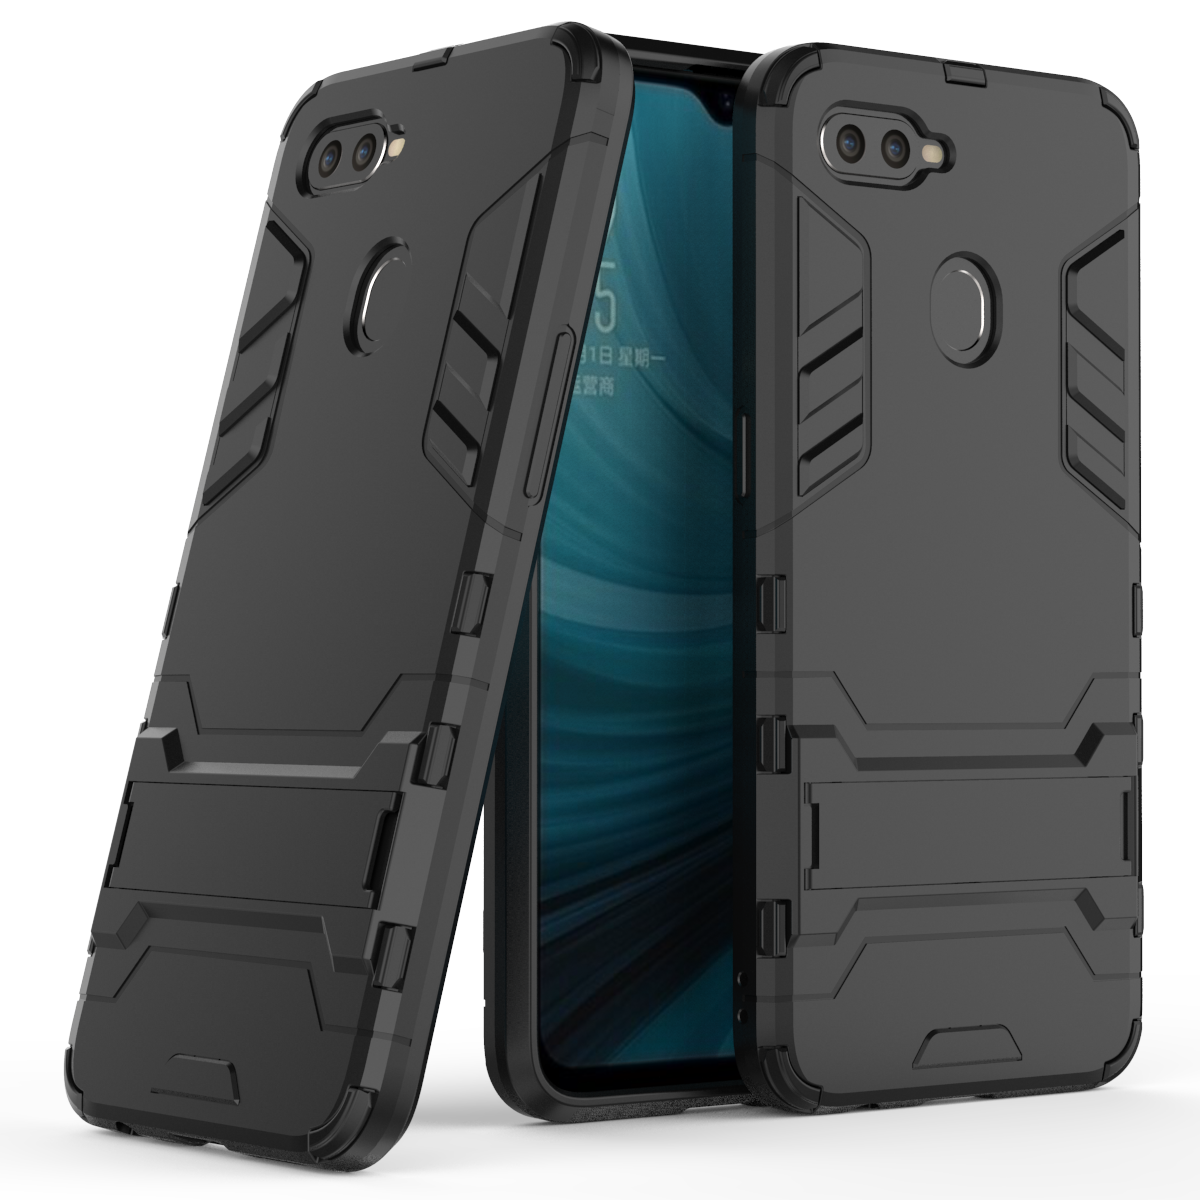 3D Shockproof Armor <font><b>Cases</b></font> For <font><b>OPPO</b></font> A3 A33 A35 <font><b>A37</b></font> A39 A5 A57 A59 A7 A73 A75 A75S A79 A7X A83 TPU Protective Stand <font><b>Phone</b></font> Cover image